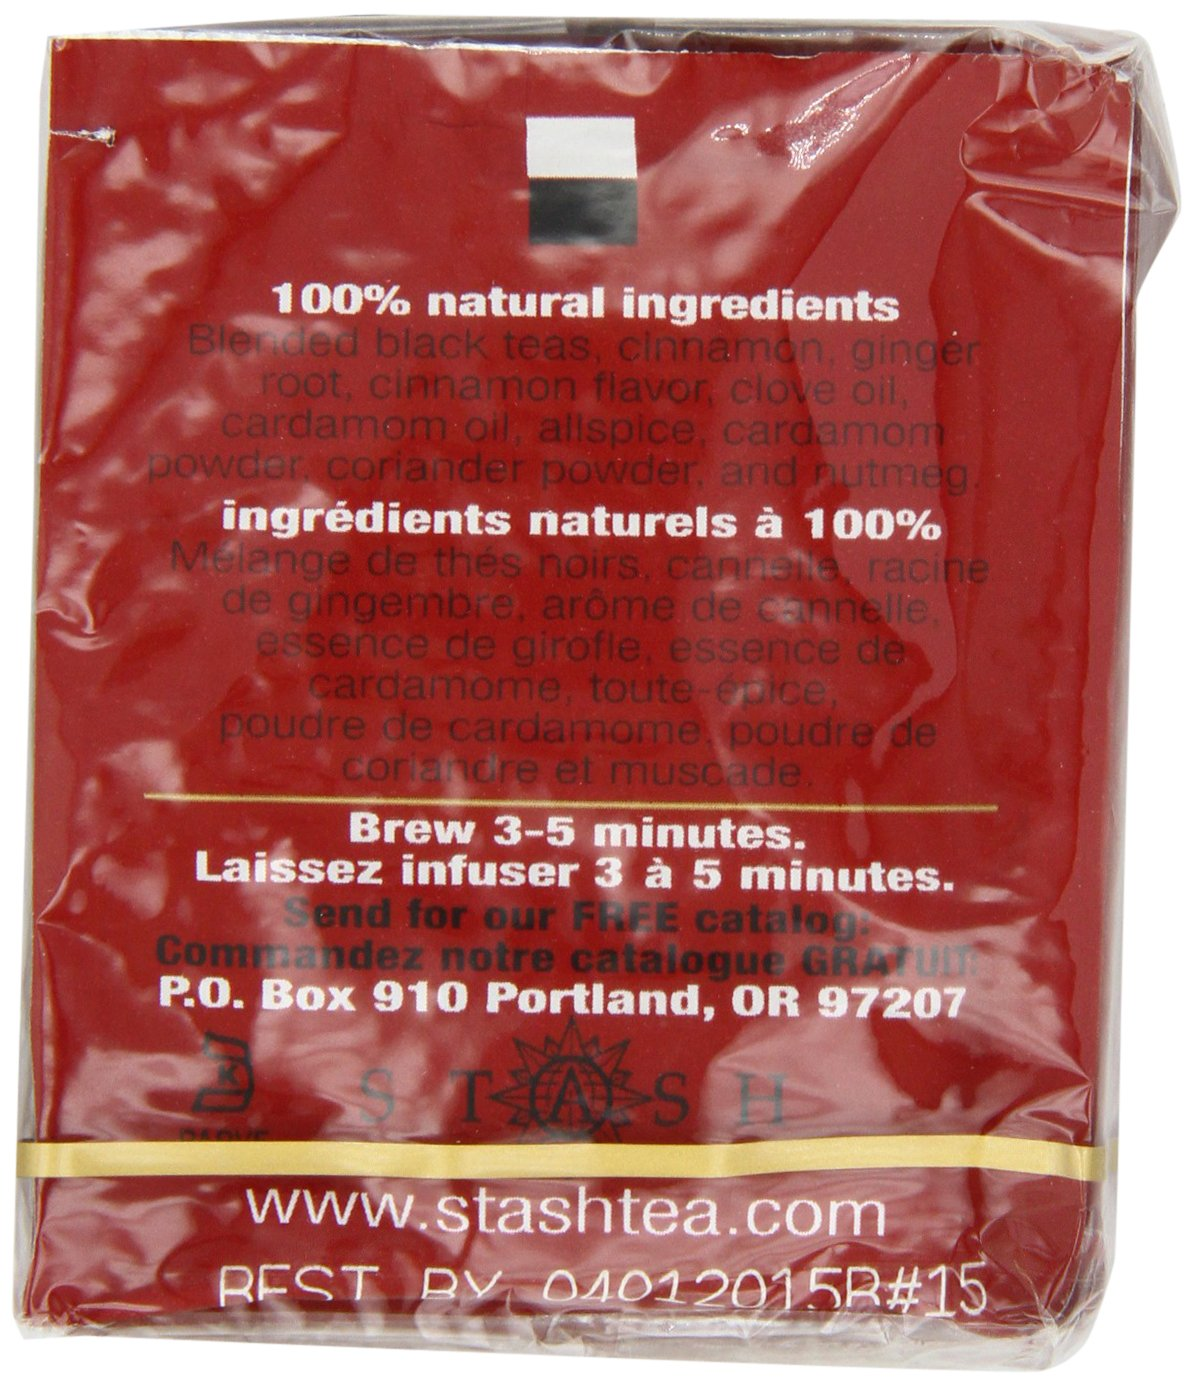 Stash Tea Double Spice Chai Black Tea, 10 Count Tea Bags in Foil (Pack of 12), (packaging may vary) by Stash Tea (Image #6)